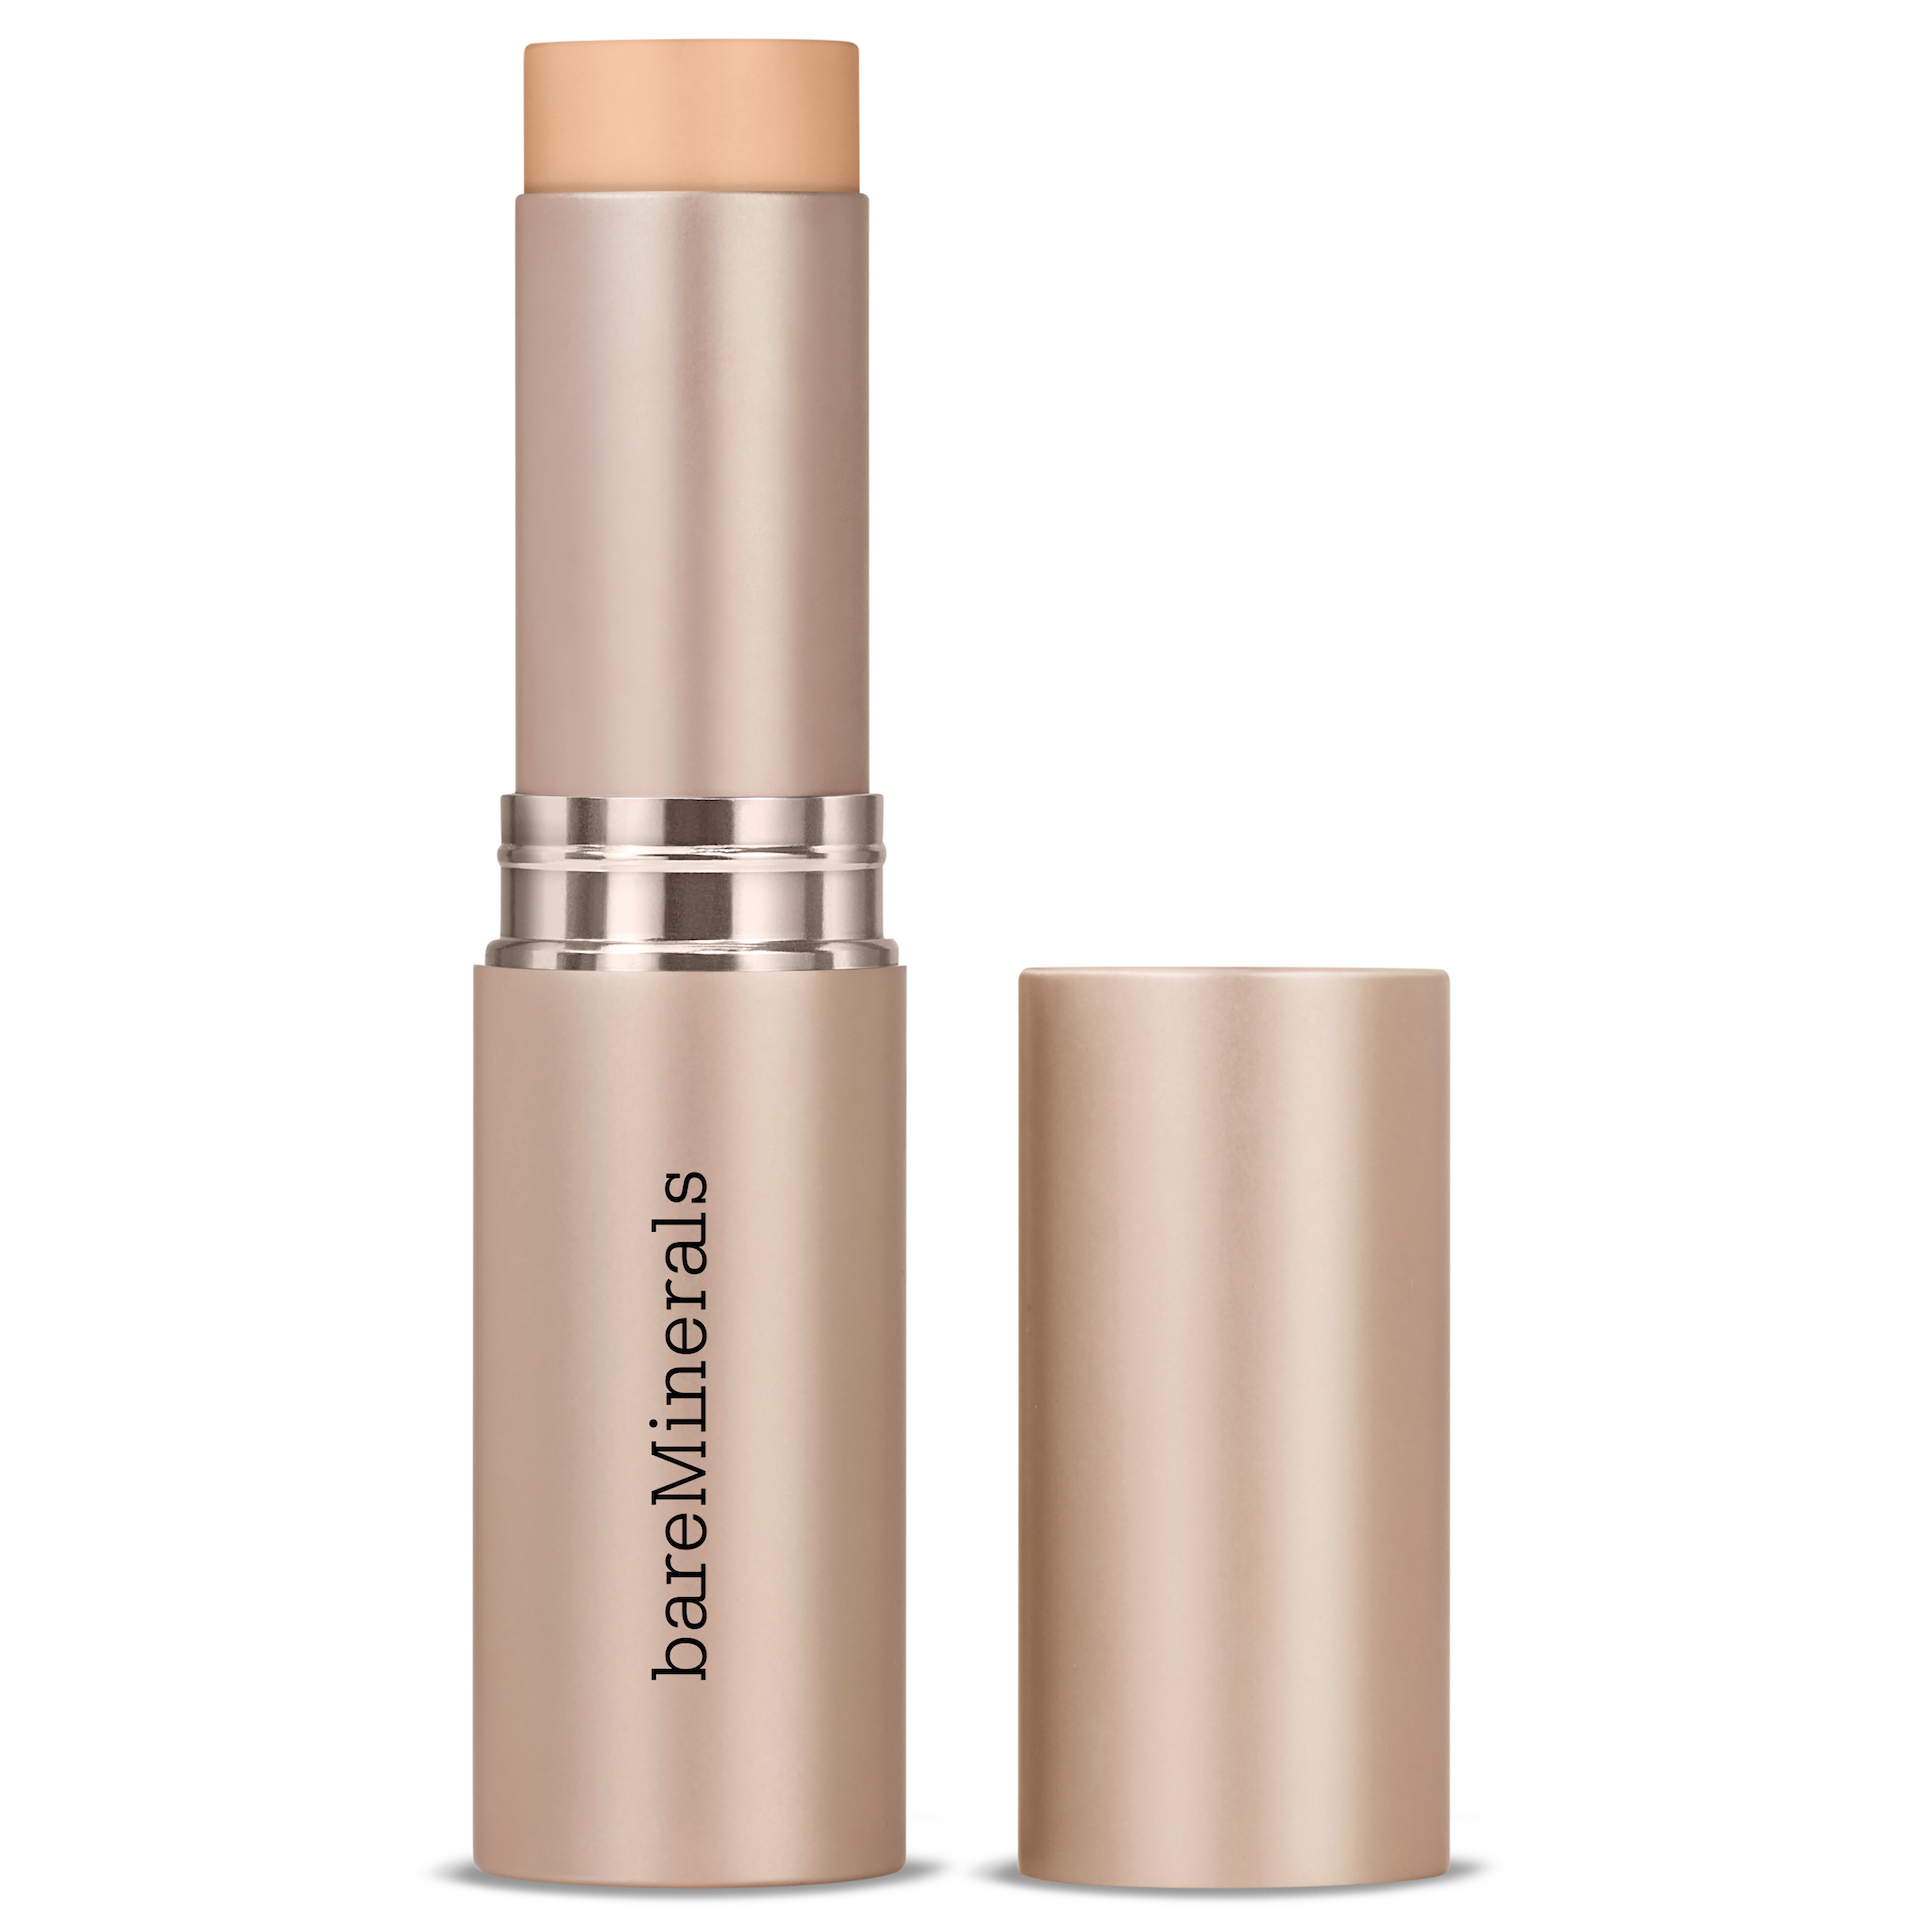 Complexion Rescue Hydrating Foundation Stick SPF 25 Vanilla 02